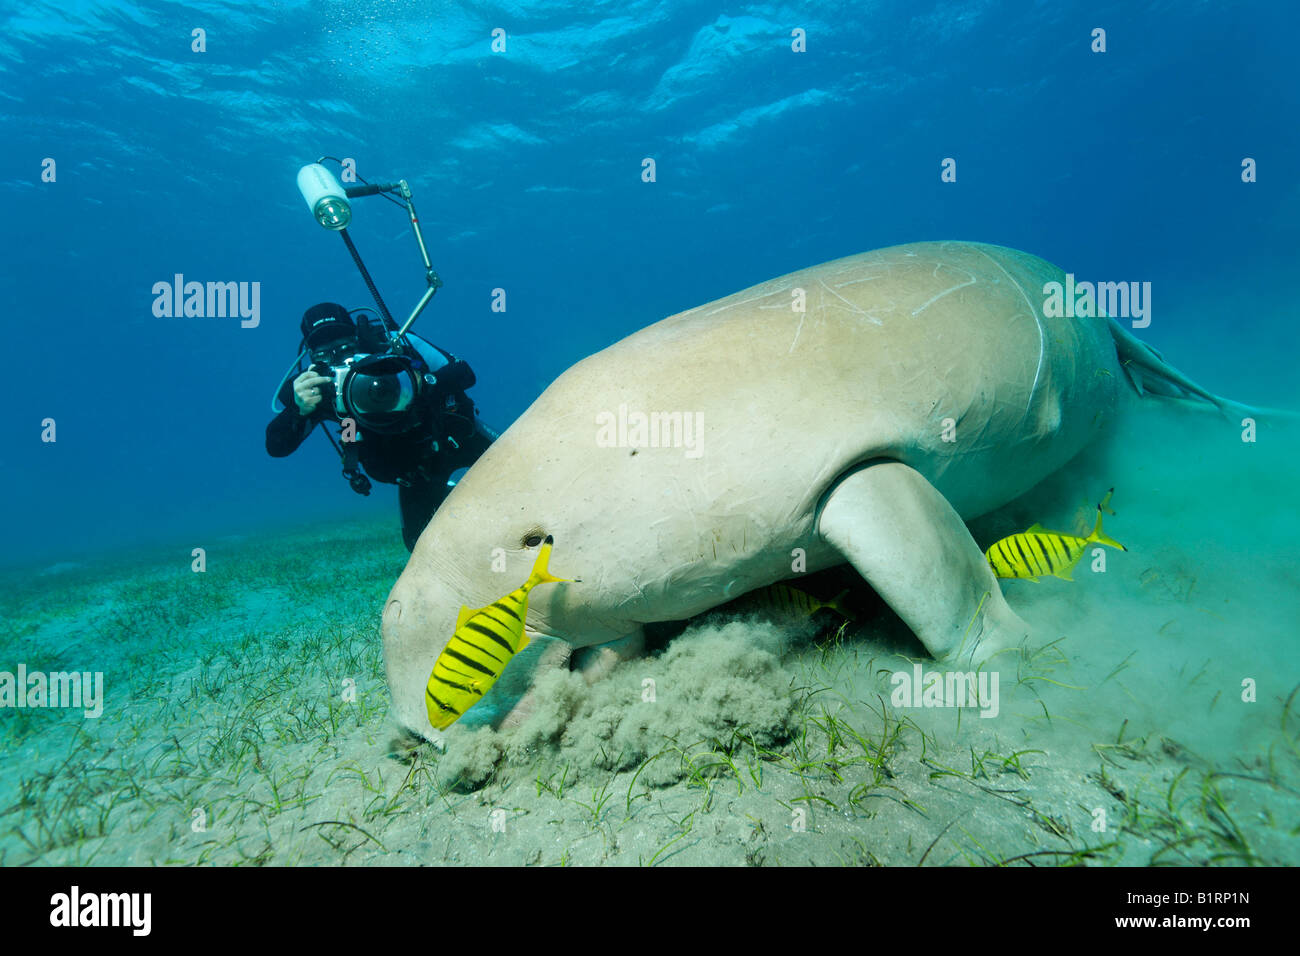 Dugong (Dugong dugon) and two Golden Trevally fish (Gnathanodon speciosus), Shaab Marsa Alam, Red Sea, Egypt, Africa - Stock Image